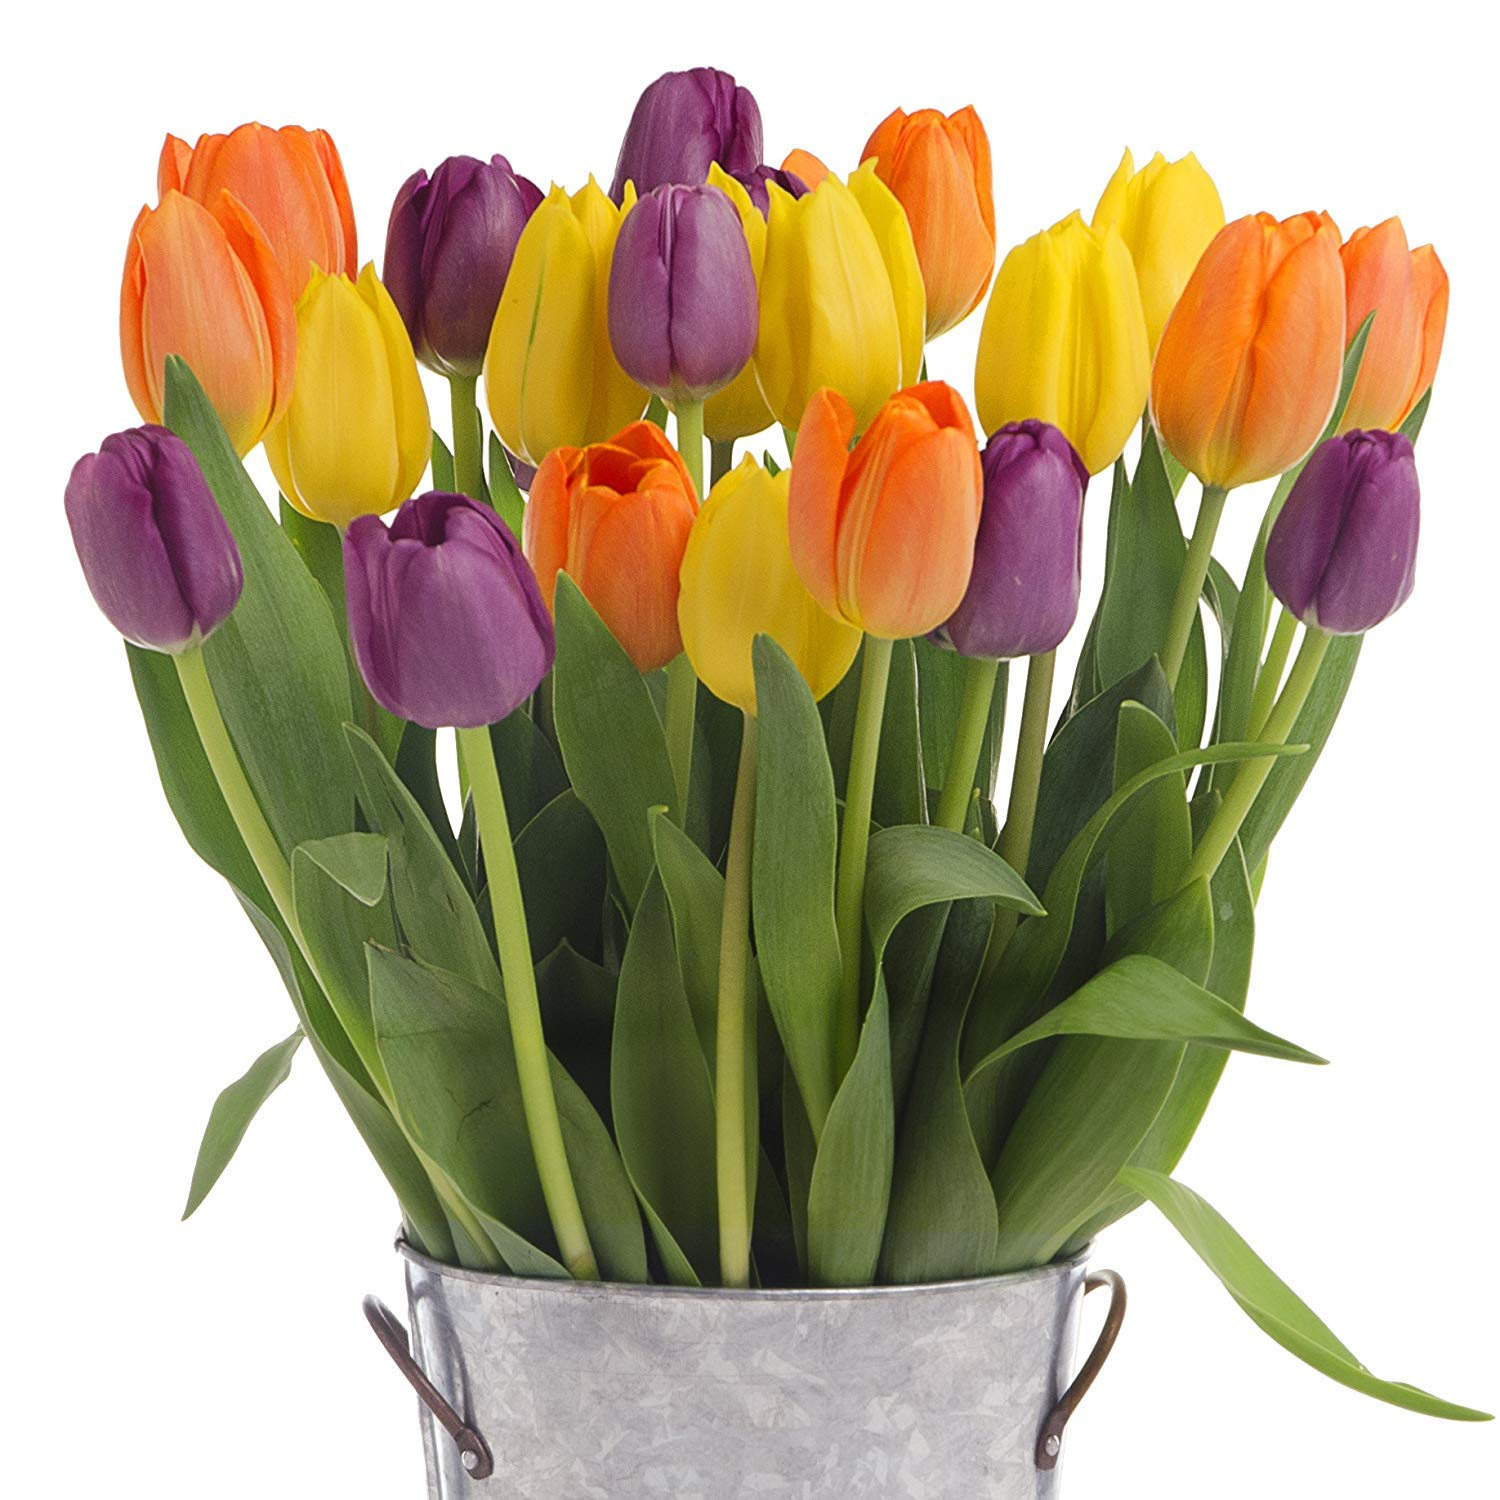 Stargazer Barn - Autumn Brights Bouquet - 2 Dozen Assorted Tulips with French Bucket Style Vase - Farm Fresh